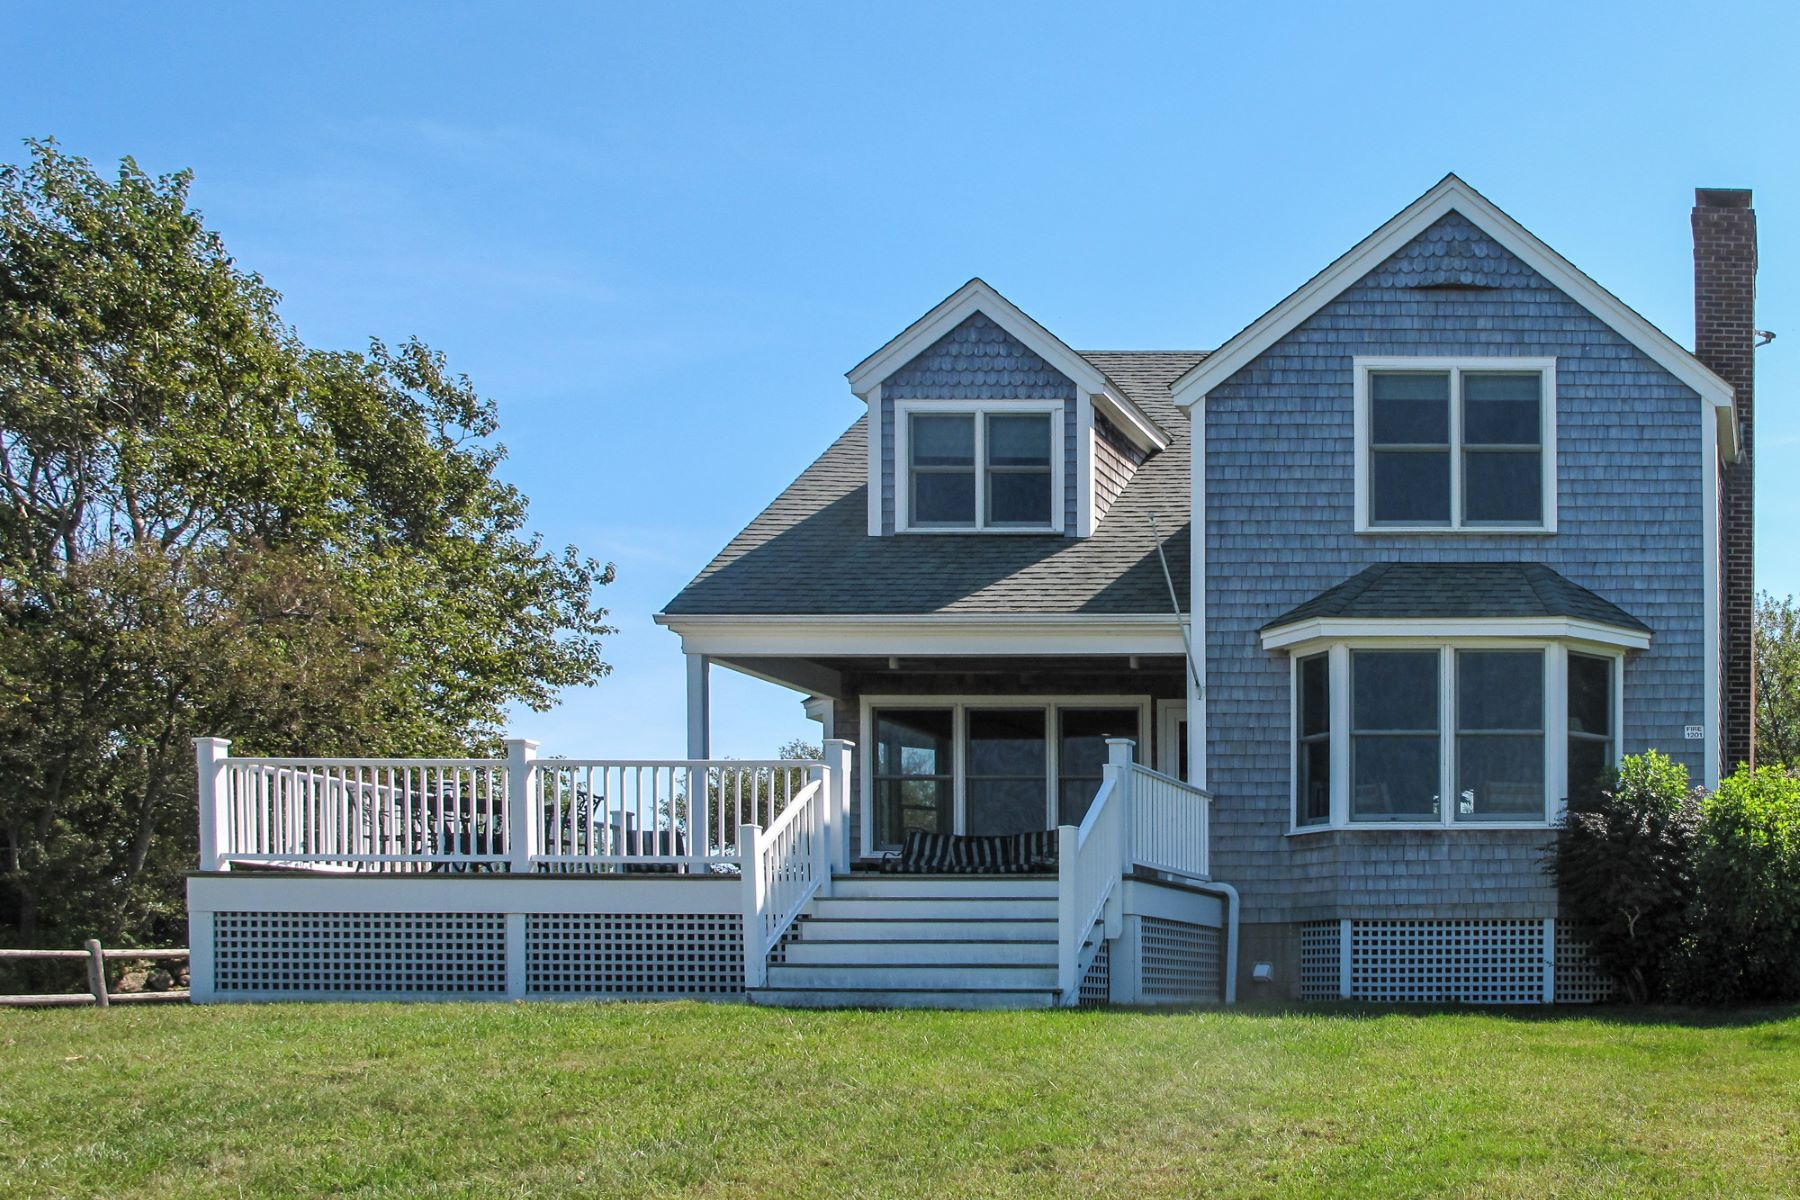 Single Family Home for Sale at 1201 Trim's Ridge 1201 West Side Road Block Island, Rhode Island 02807 United States